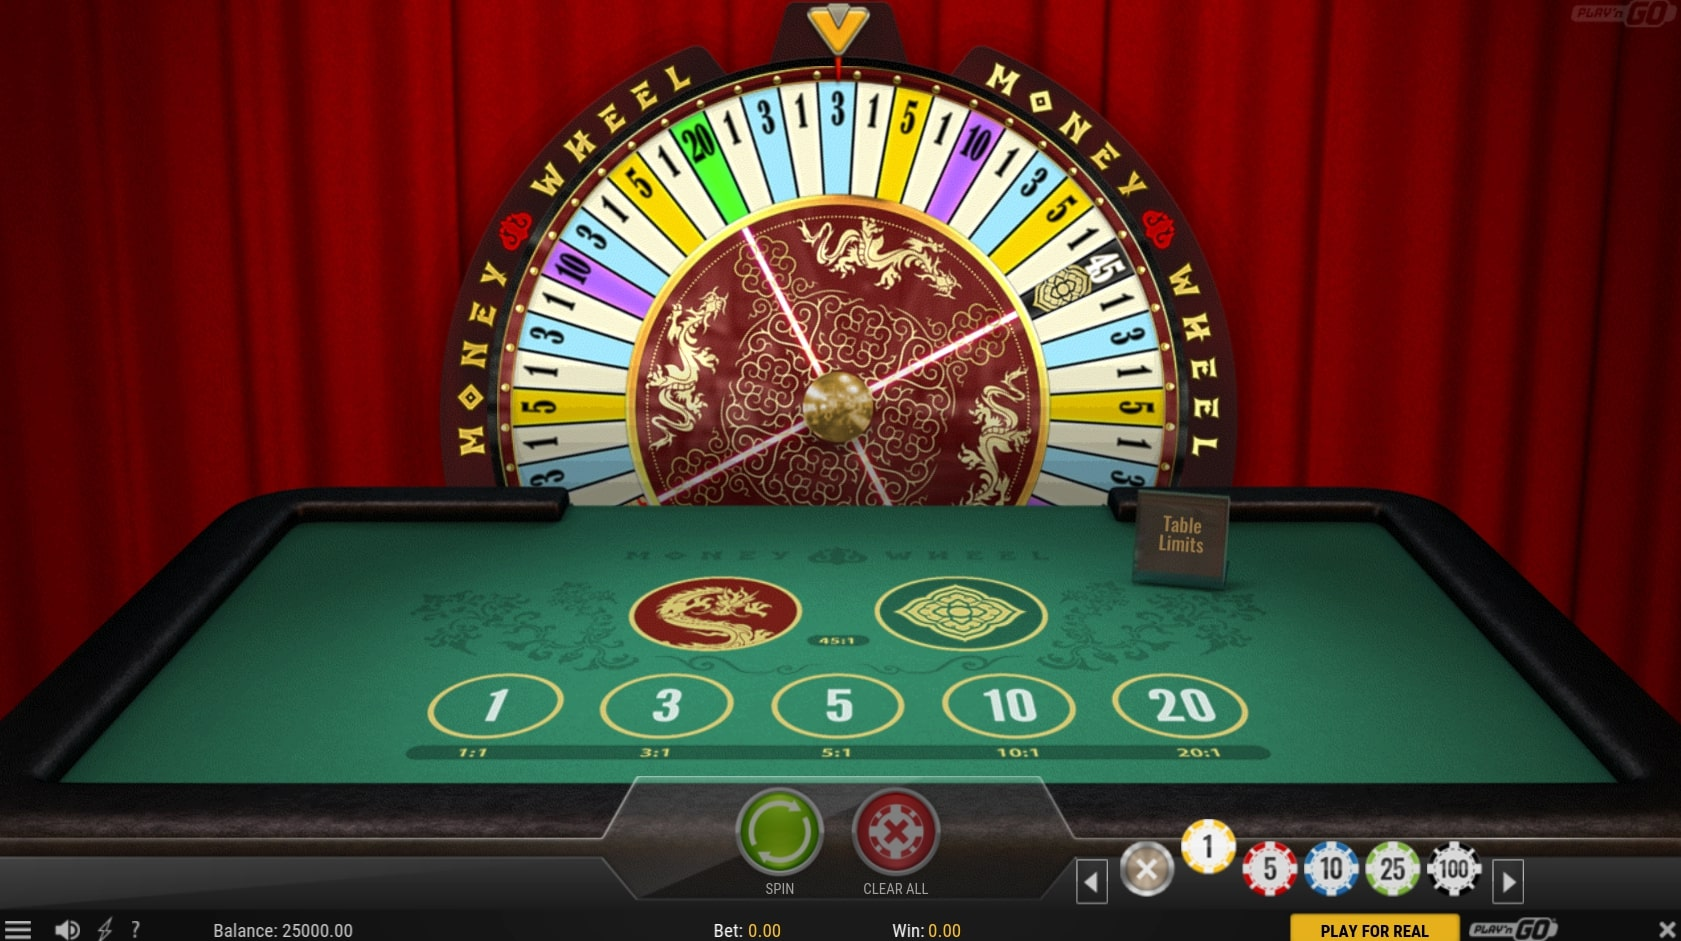 Play N Go Money Wheel table game online casino bet gameplay main screen